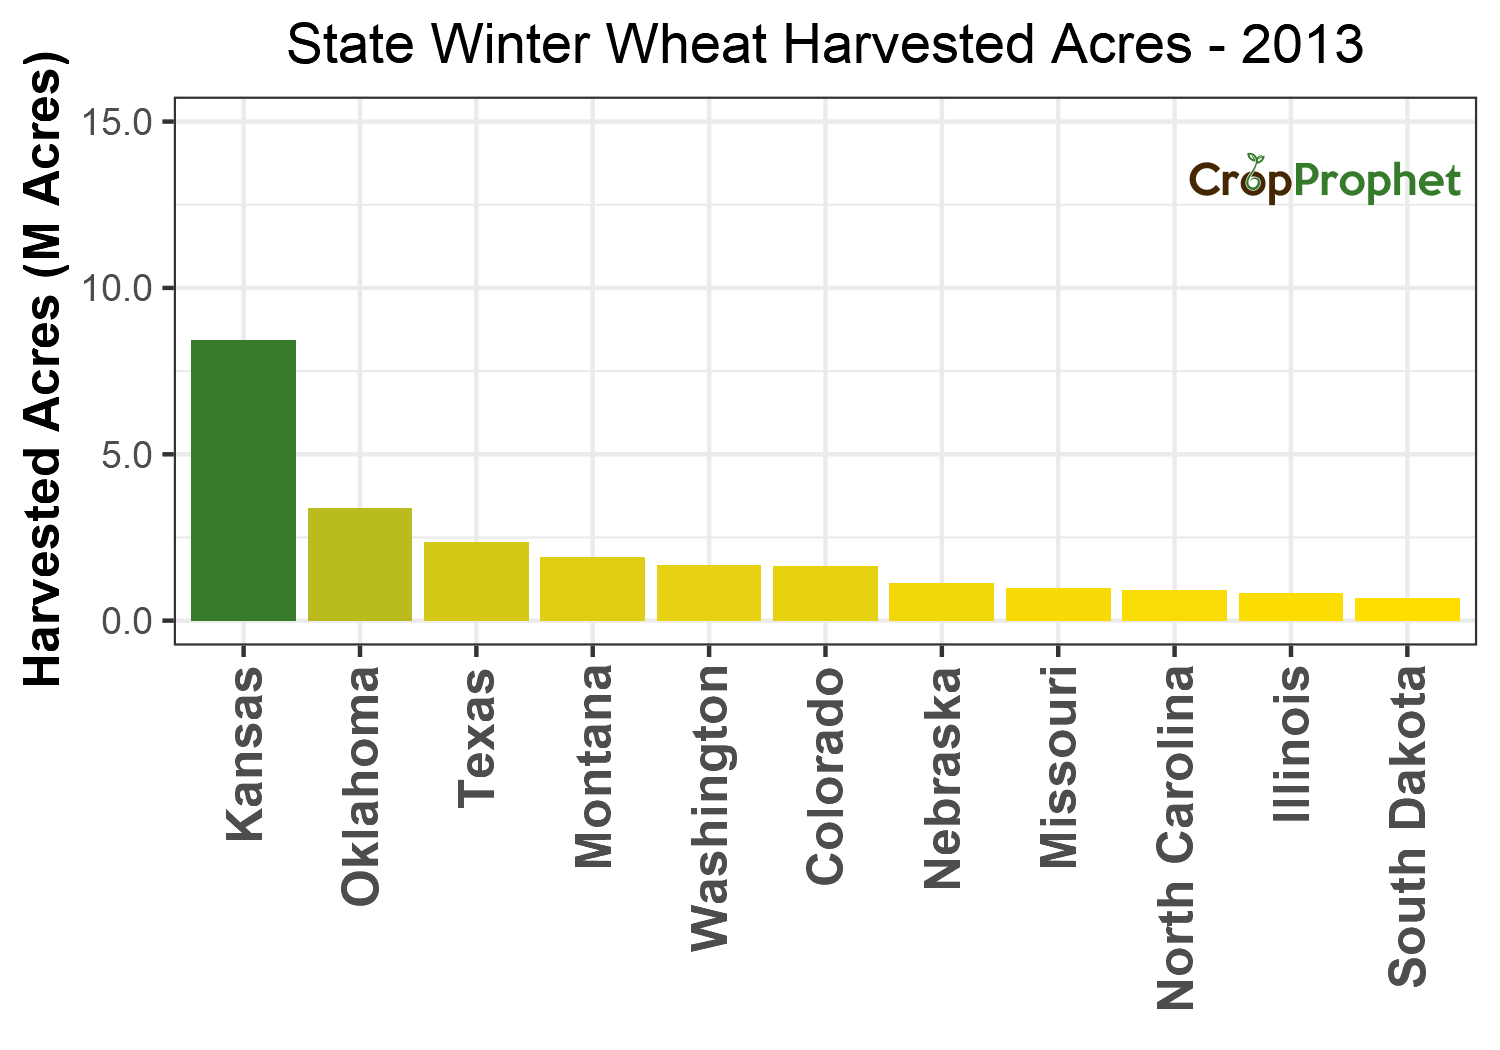 Winter wheat Harvested Acres by State - 2013 Rankings